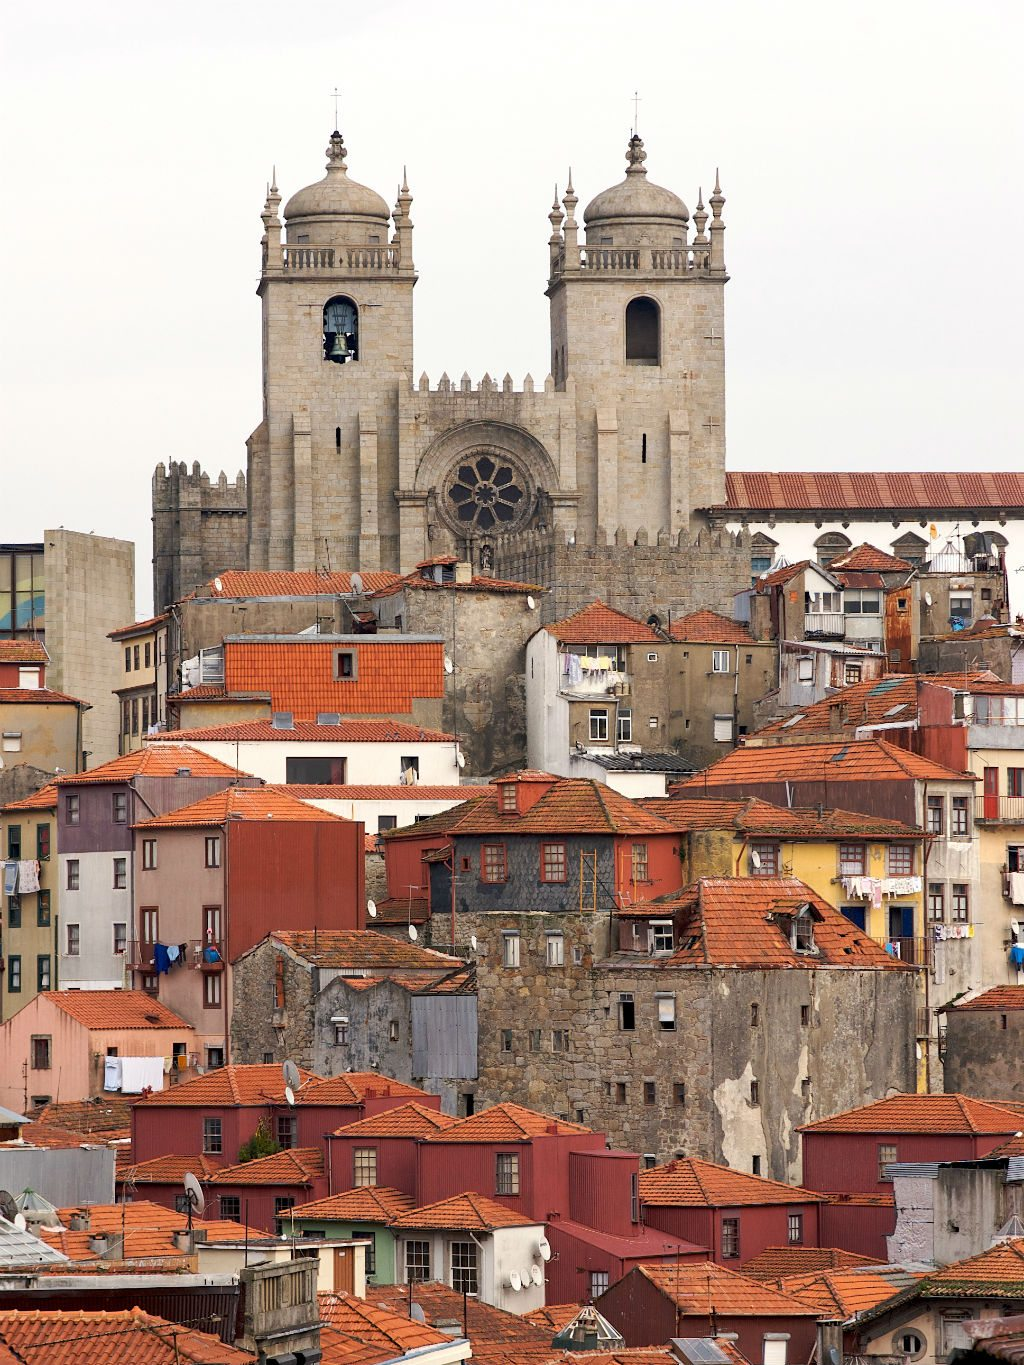 The city of Porto is like a carpet of tiled roofs. Photo: Rosino/Flickr/Creative Commons (http://bit.ly/1jxQJMa)